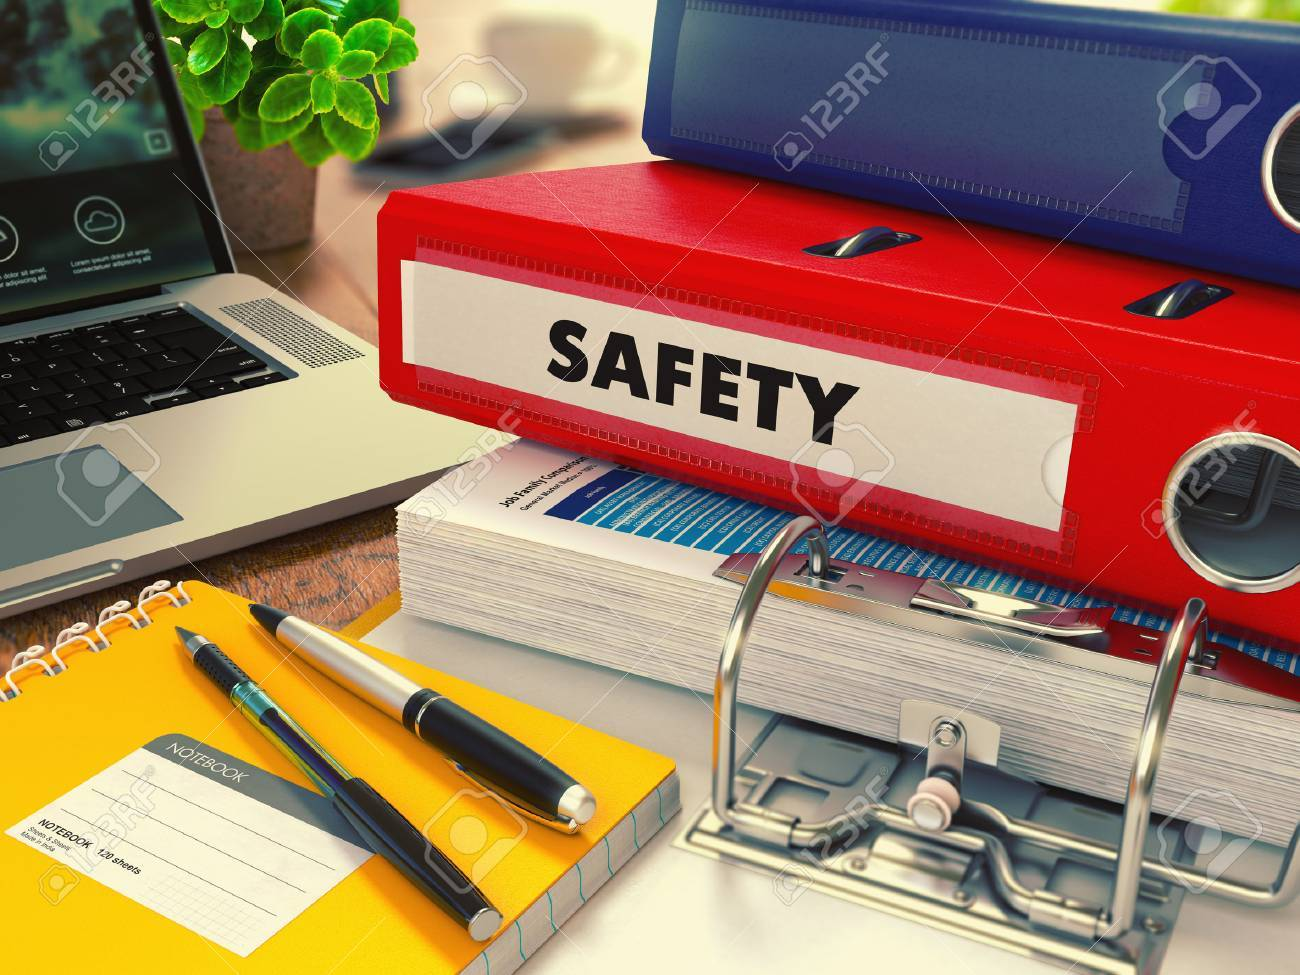 Red Office Folder with Inscription Safety on Office Desktop with Office Supplies and Modern Laptop. Business Concept on Blurred Background. Toned Image. Standard-Bild - 45649277